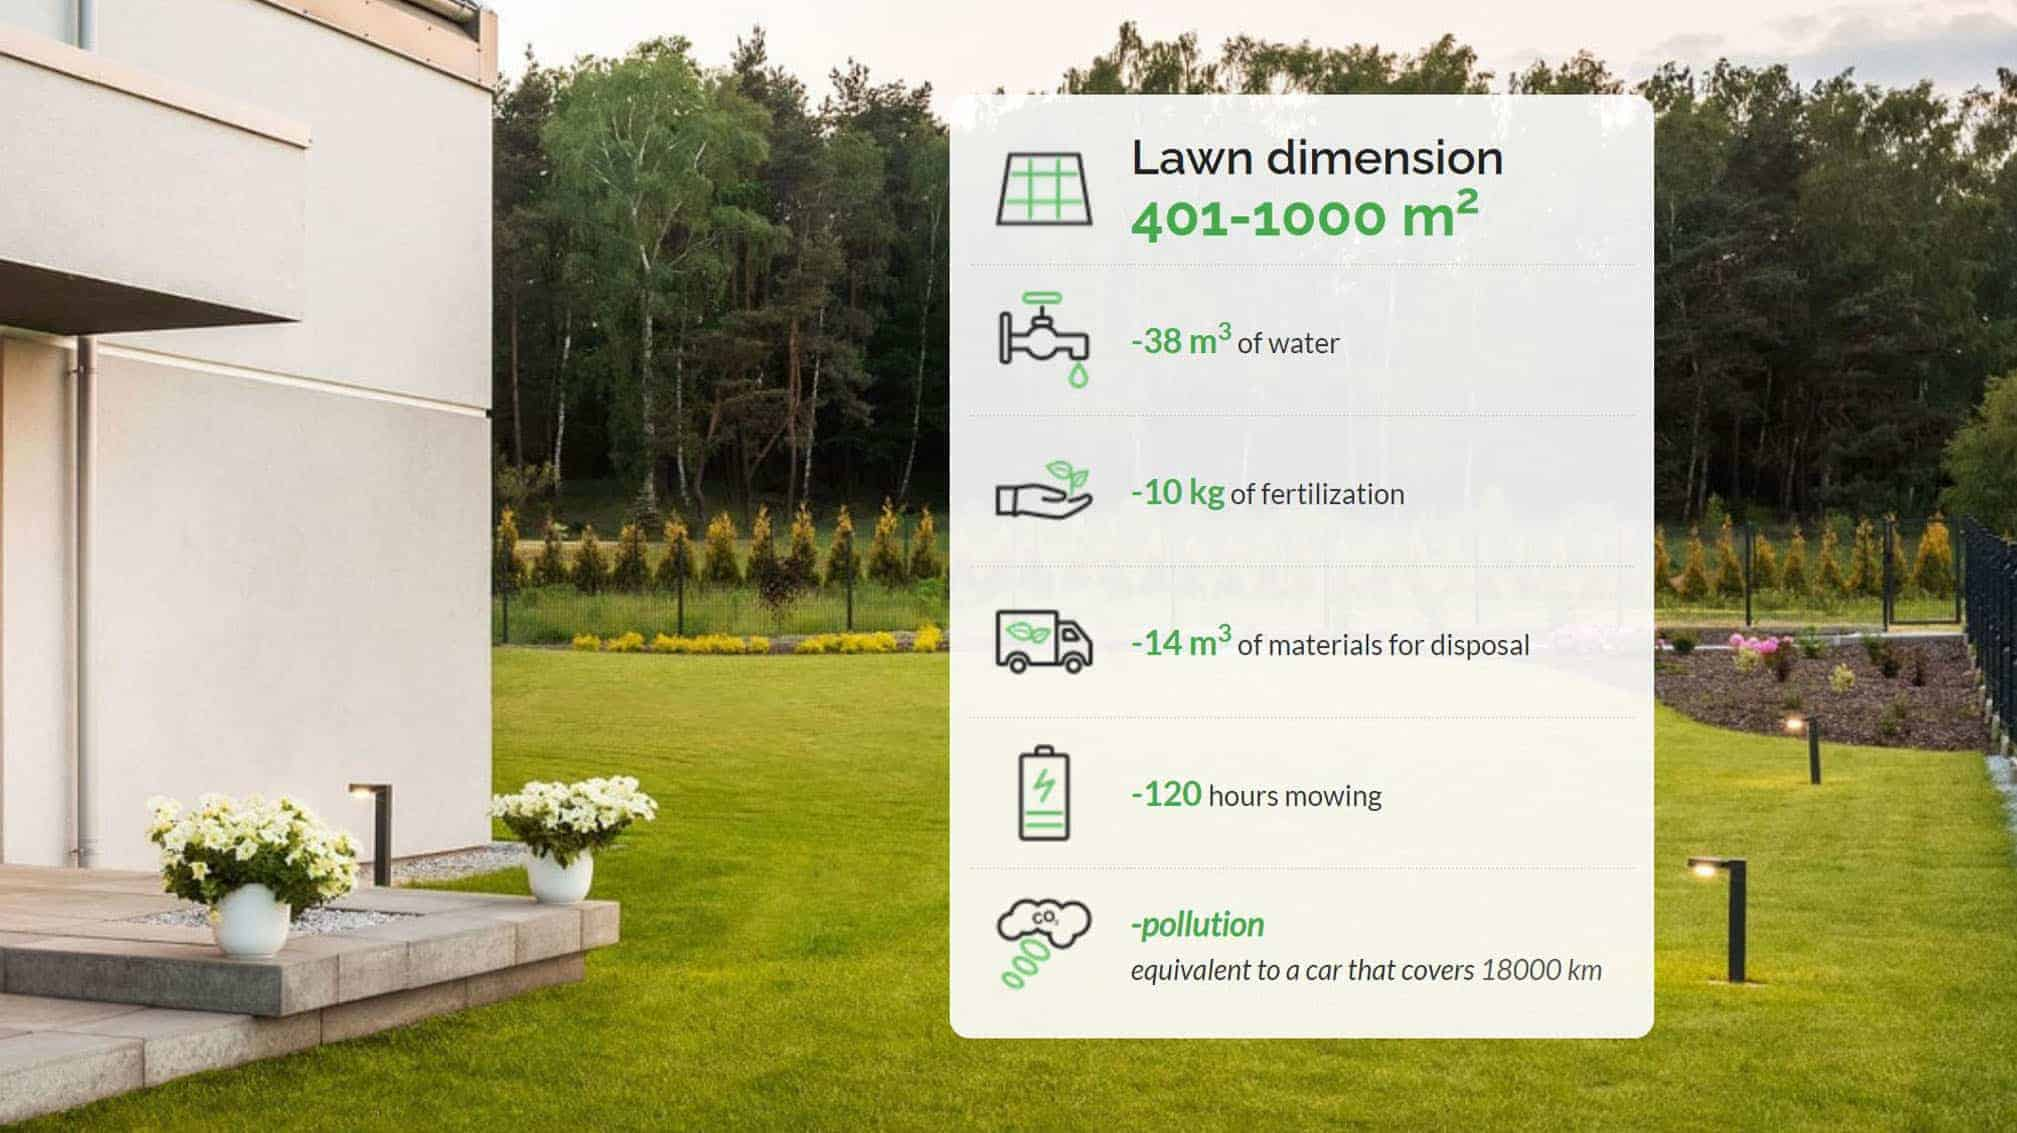 Annual saving by using a robotic mower in 401-1000m2 lawn dimension-